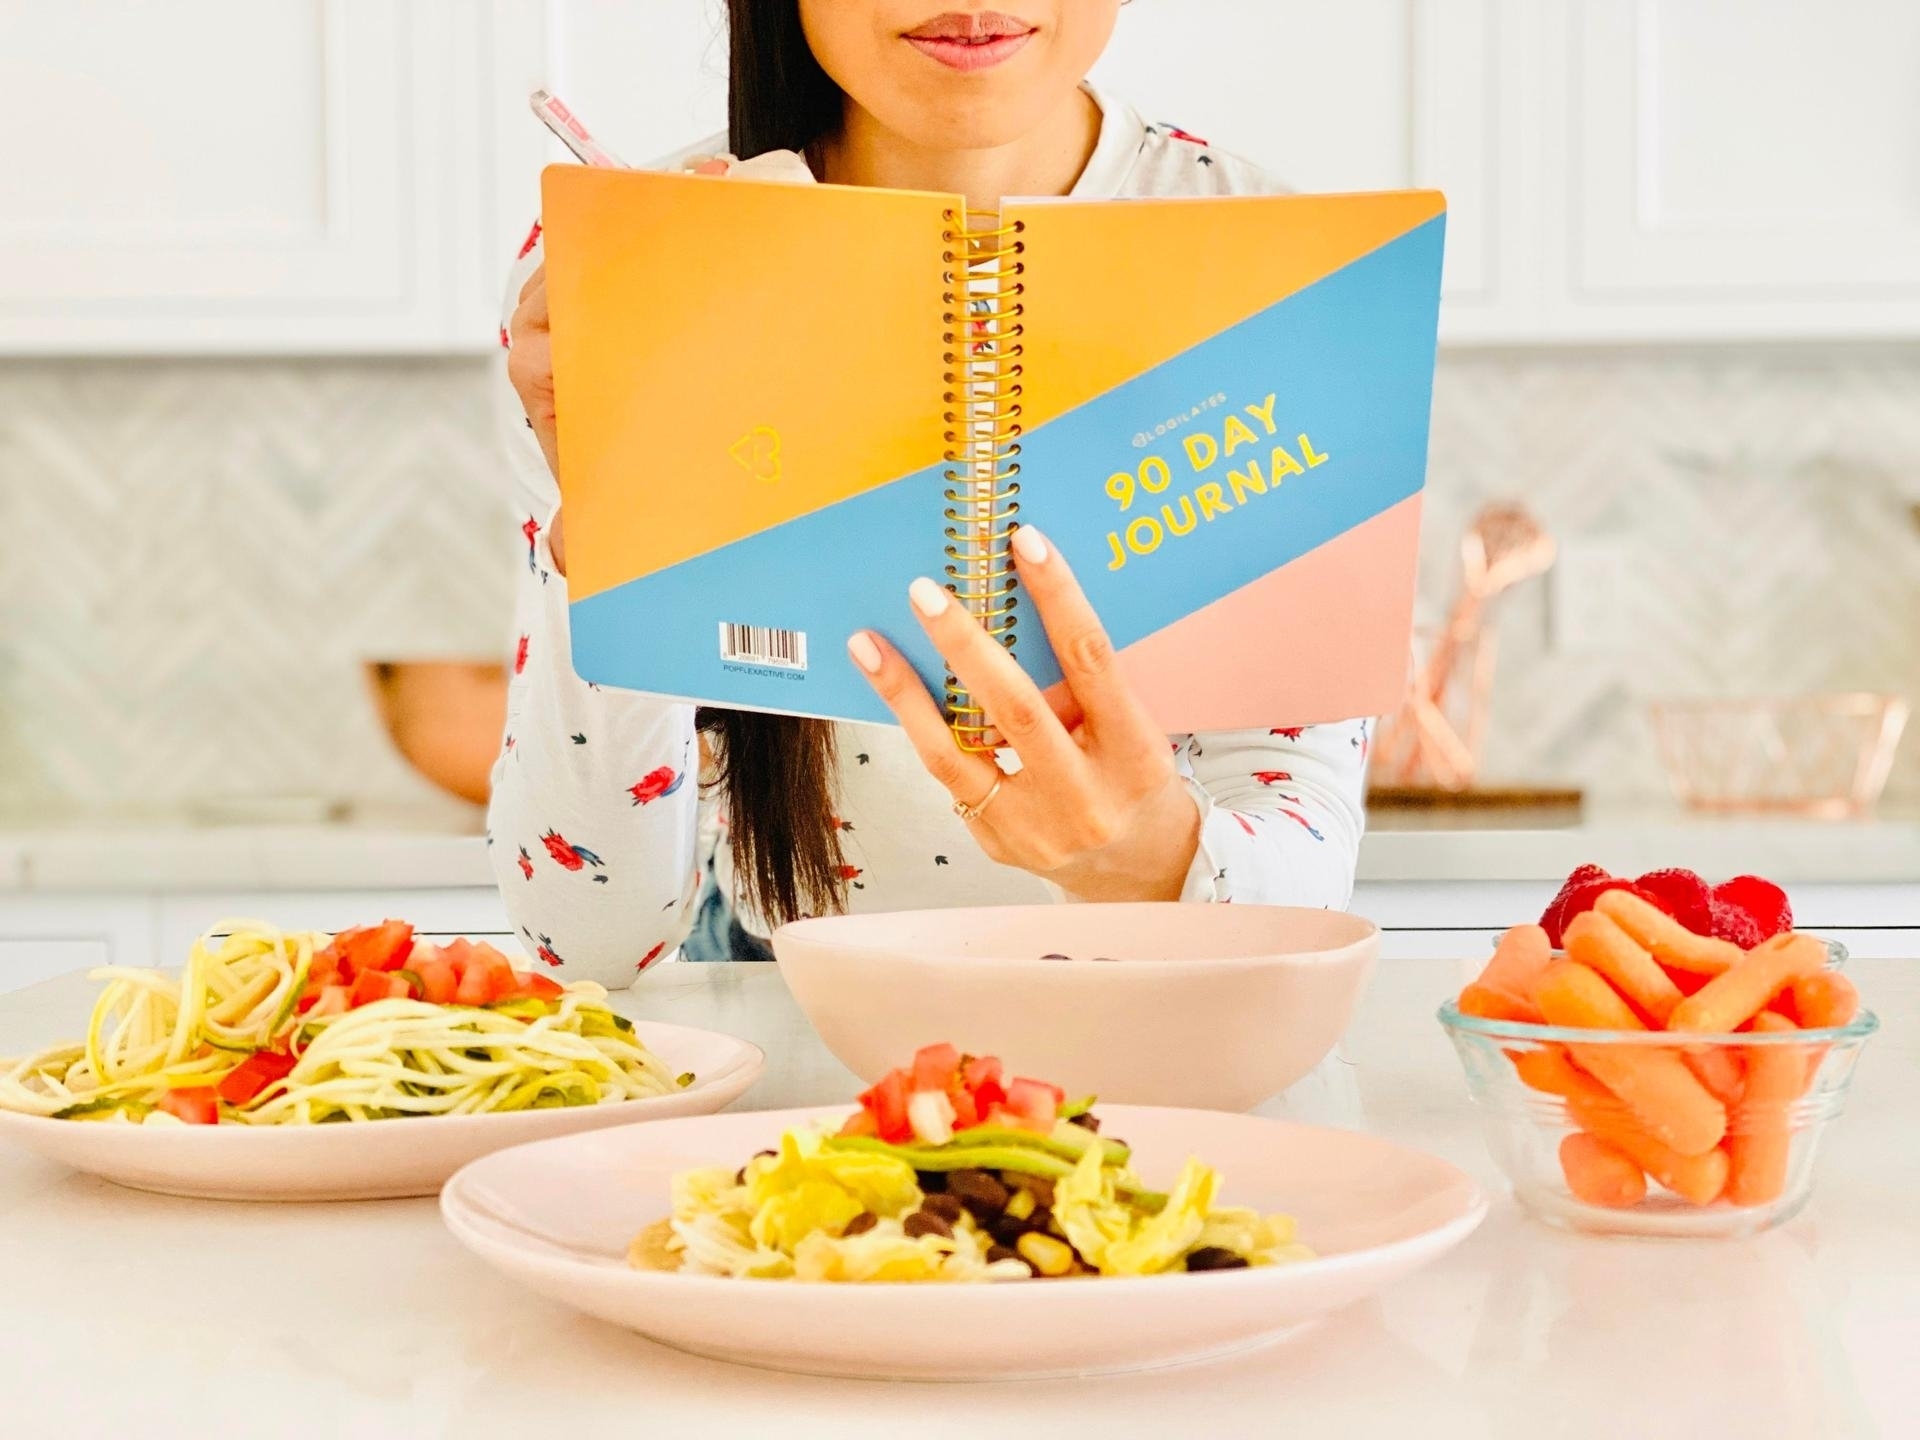 90 Day Journey Meal Plans By Blogilates